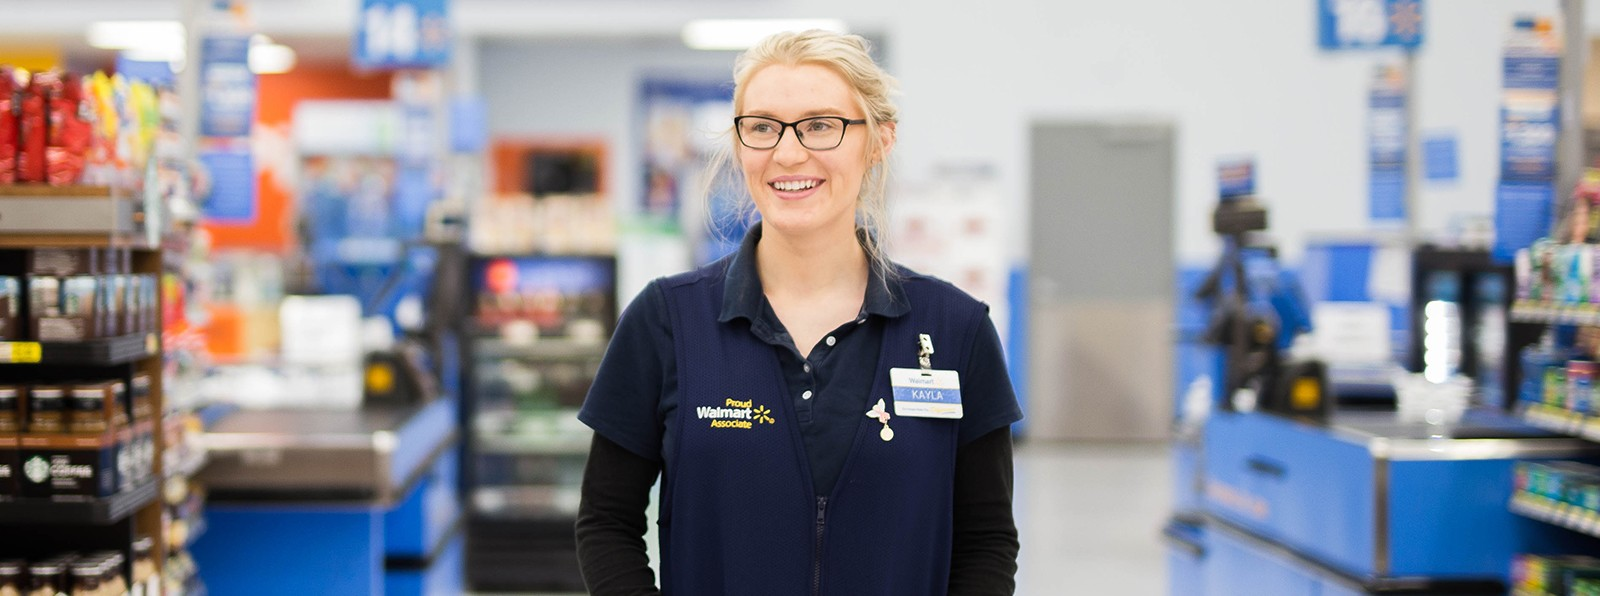 Stocker, Backroom, & Receiving Associates | Walmart Careers